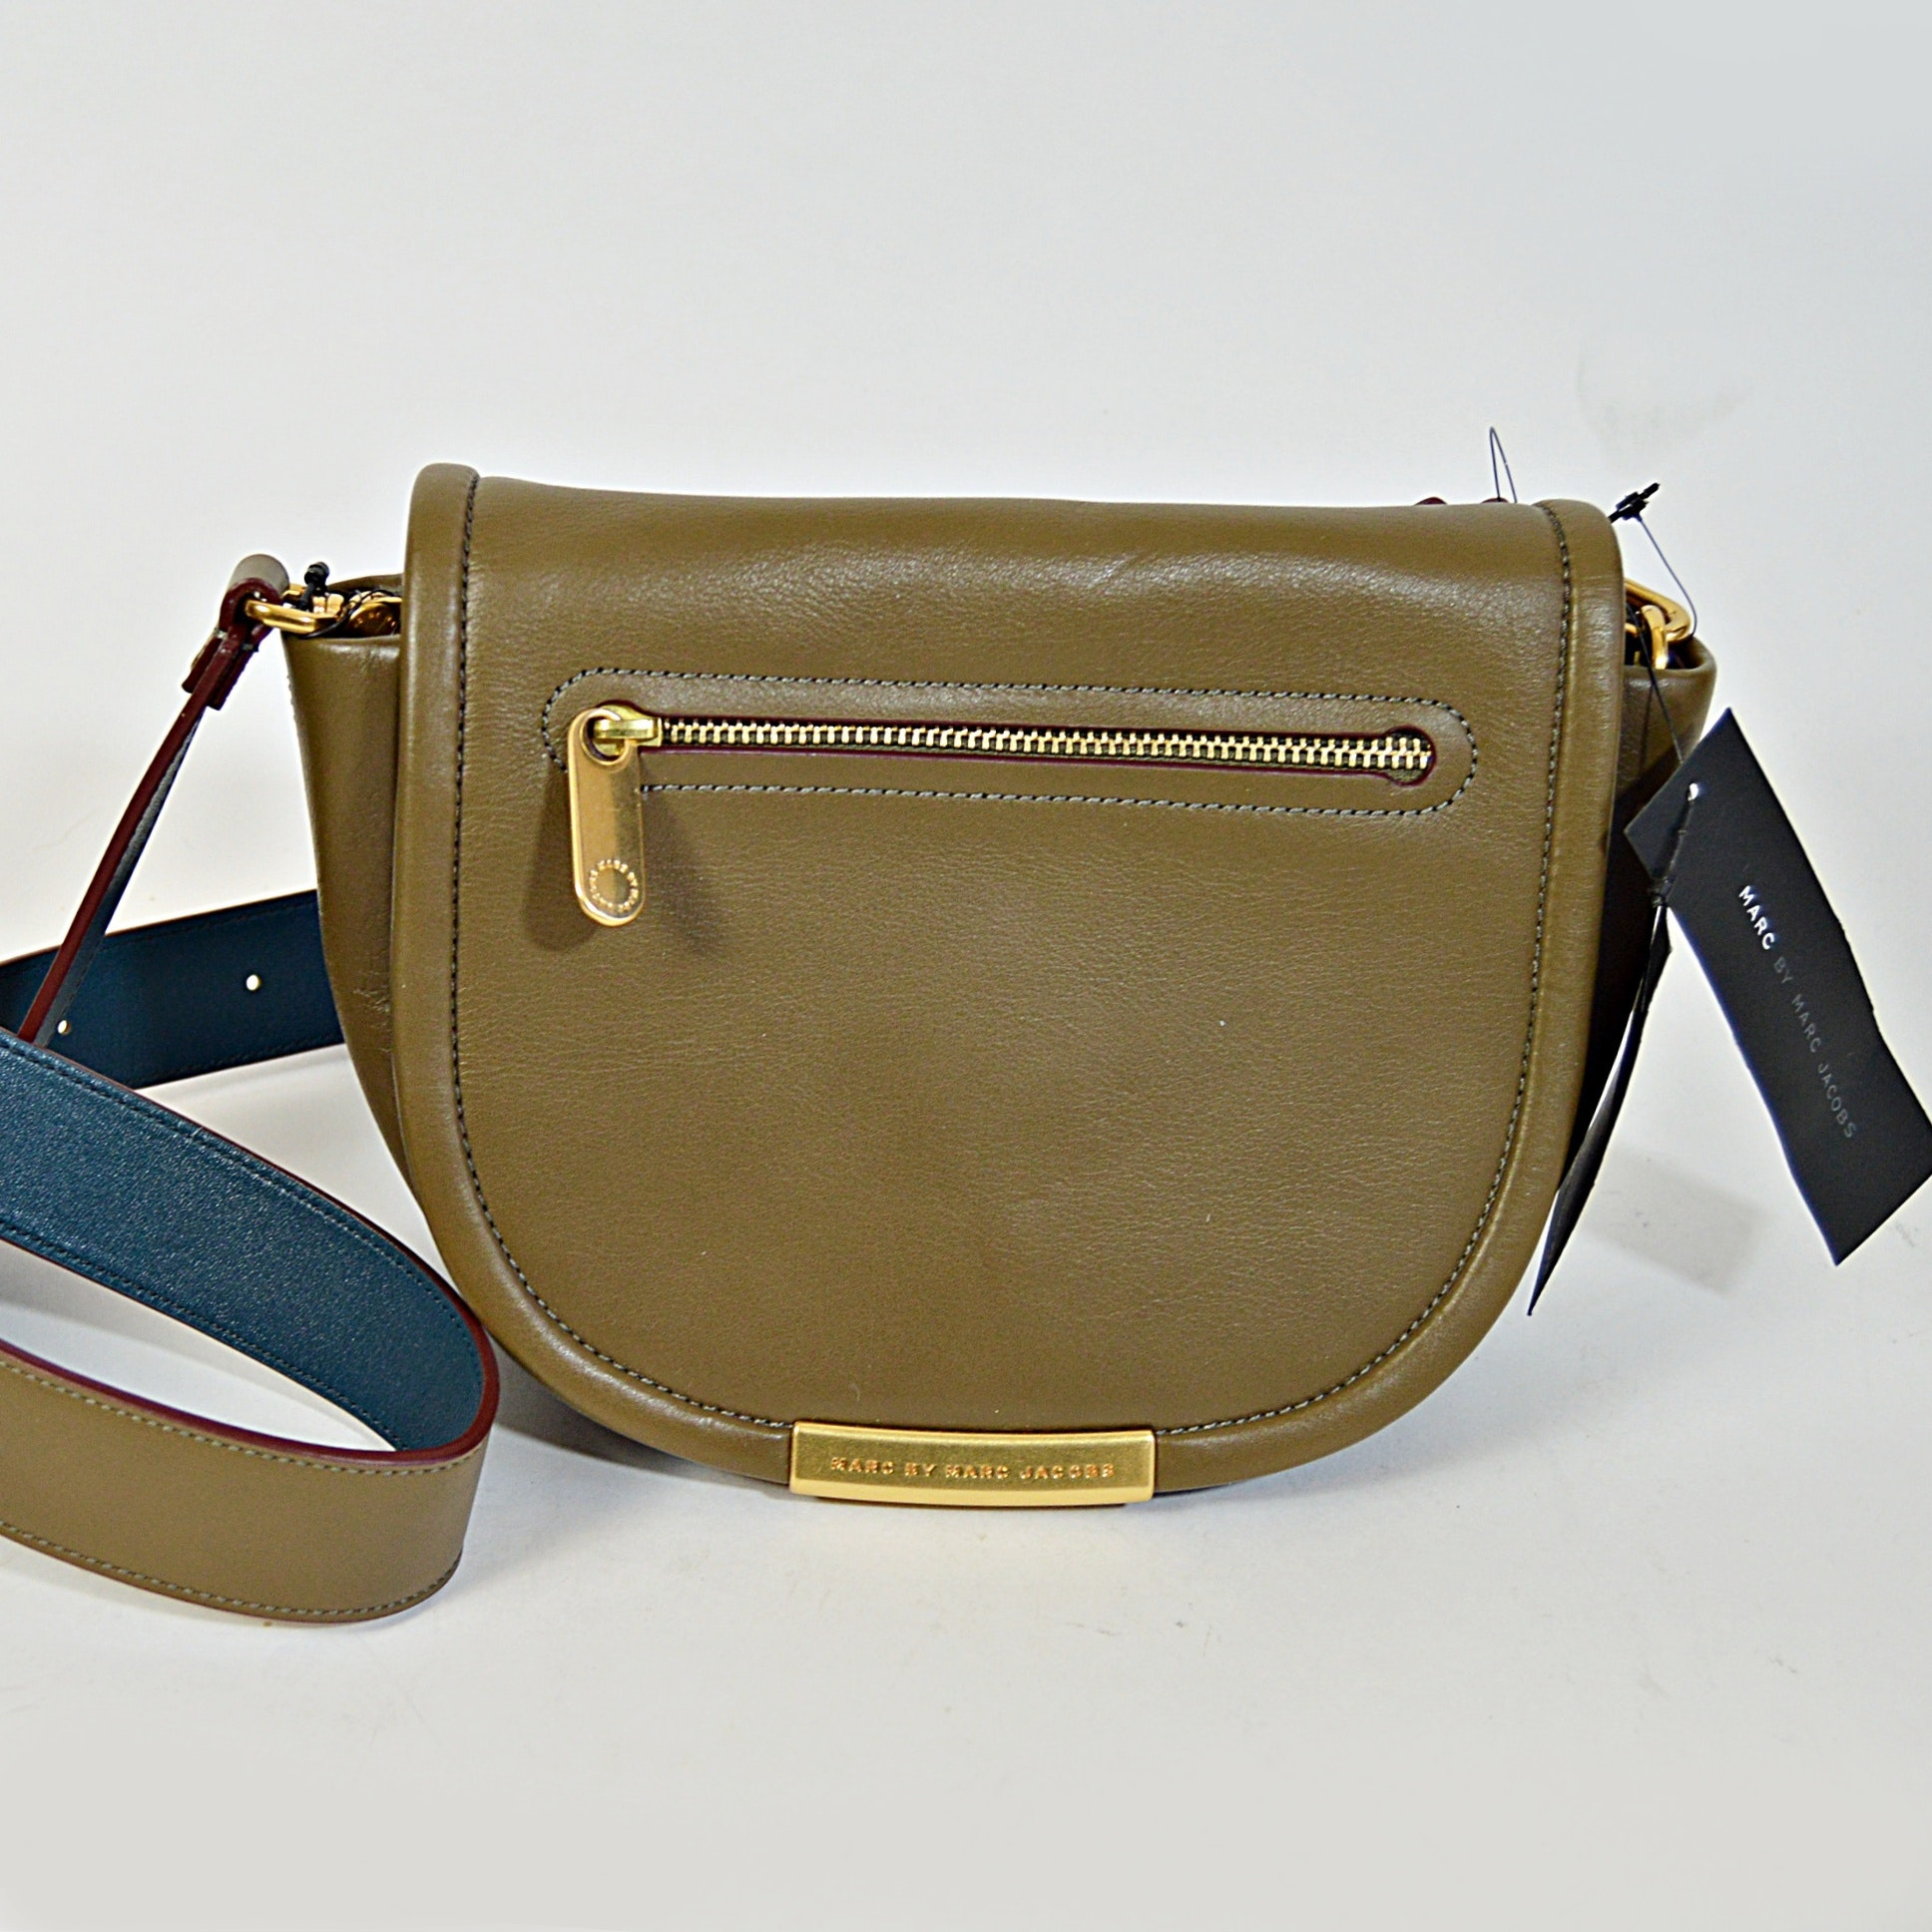 Marc by Marc Jacobs Saddle Bag